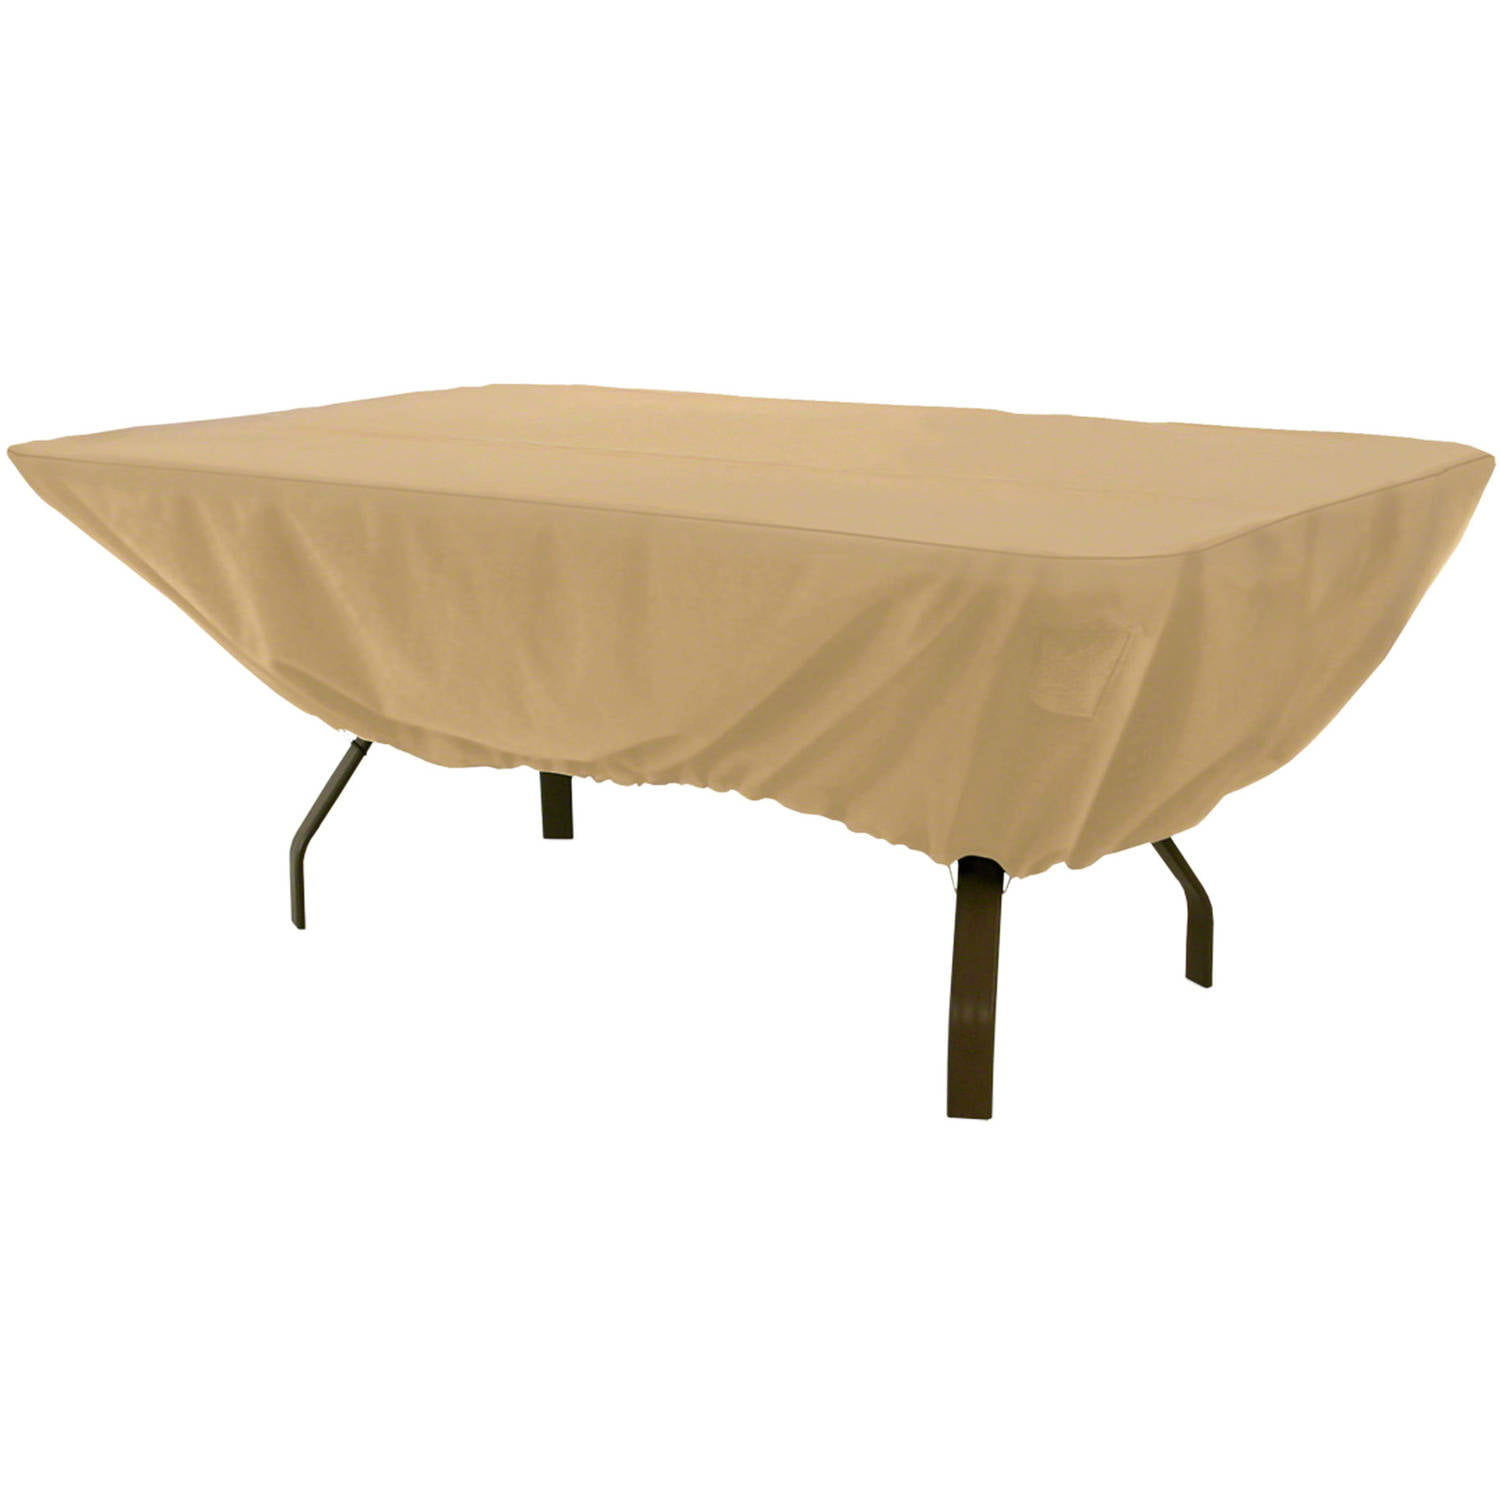 Classic Accessories Terrazzo Rectangular Oval Patio Table Cover